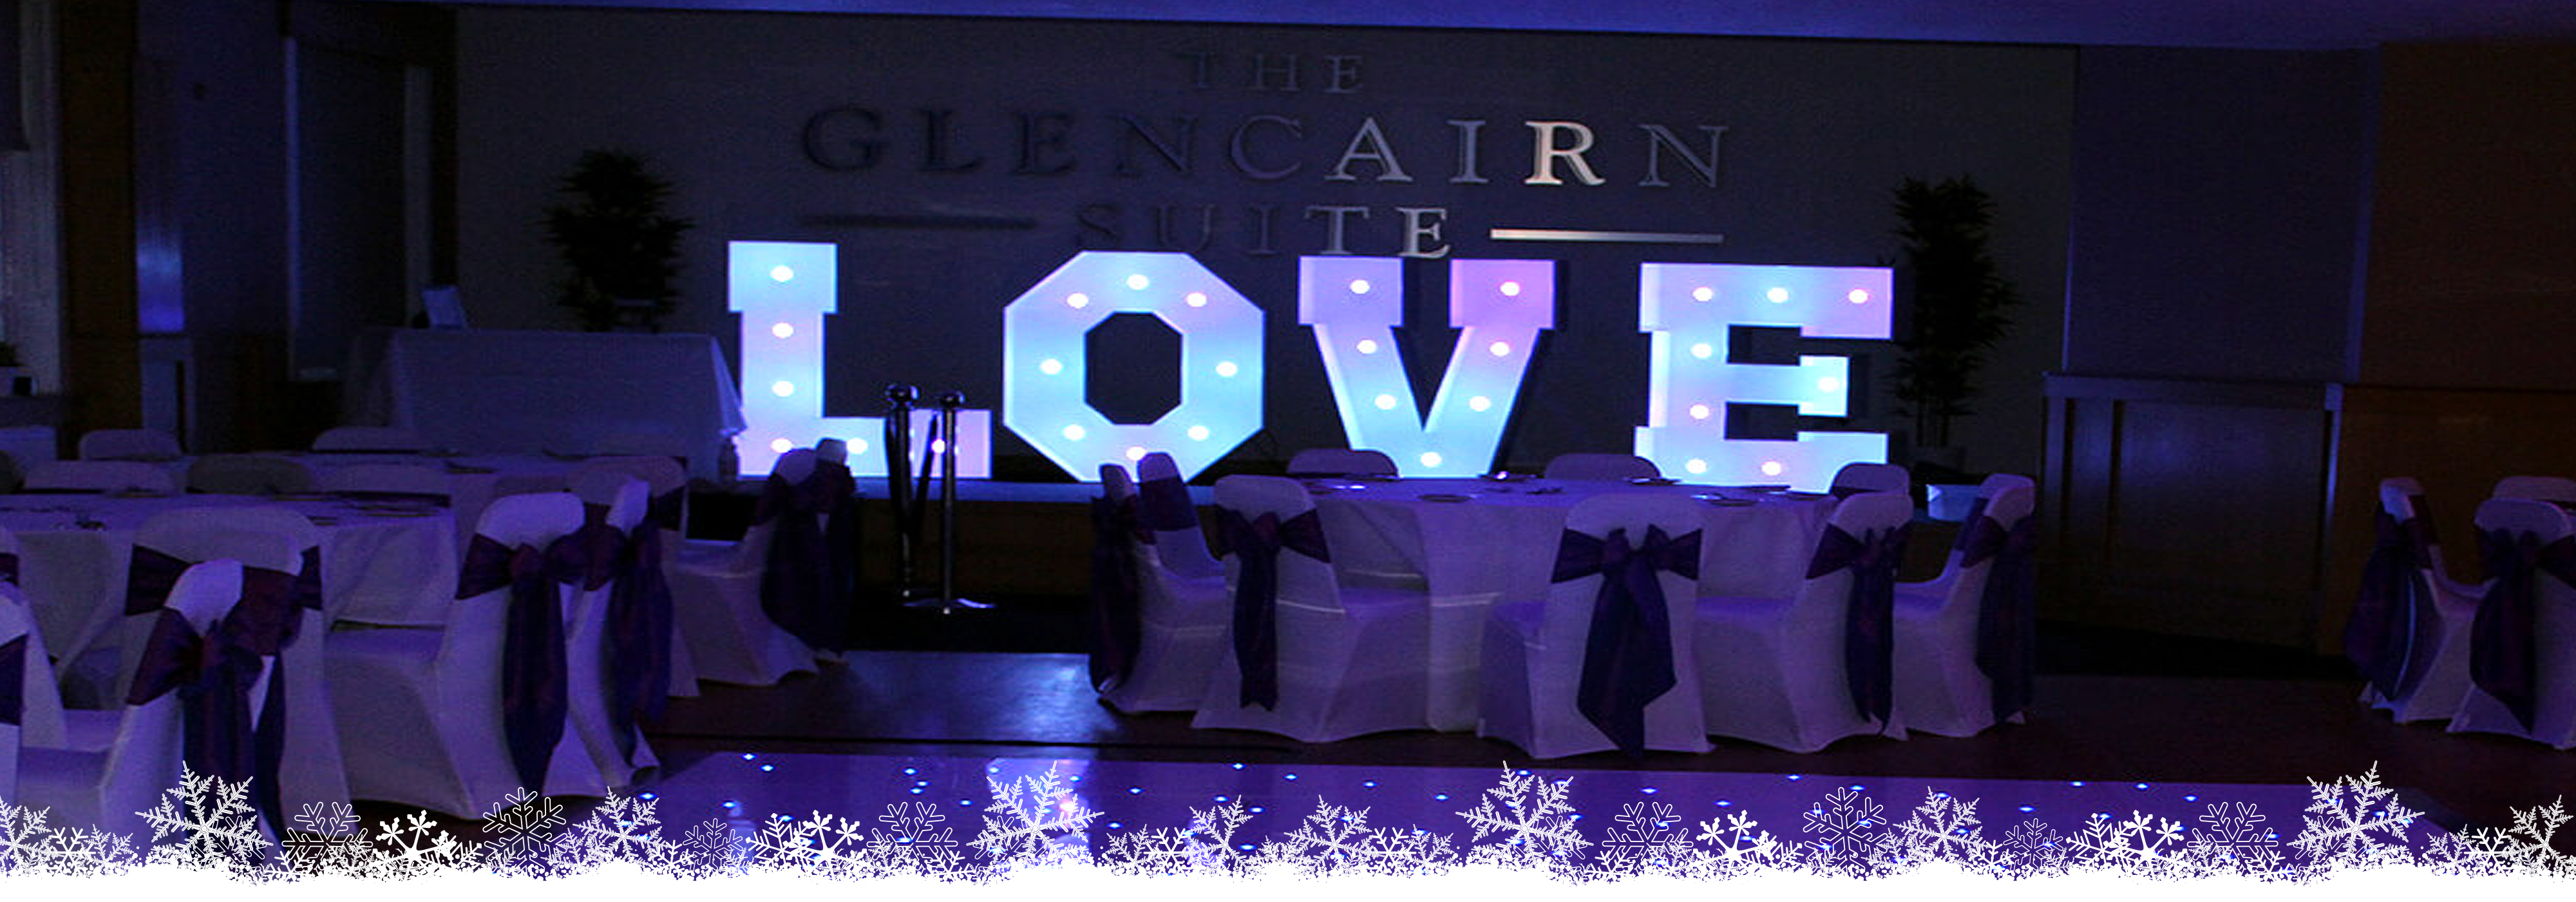 glencairn suite weddings ayrshire